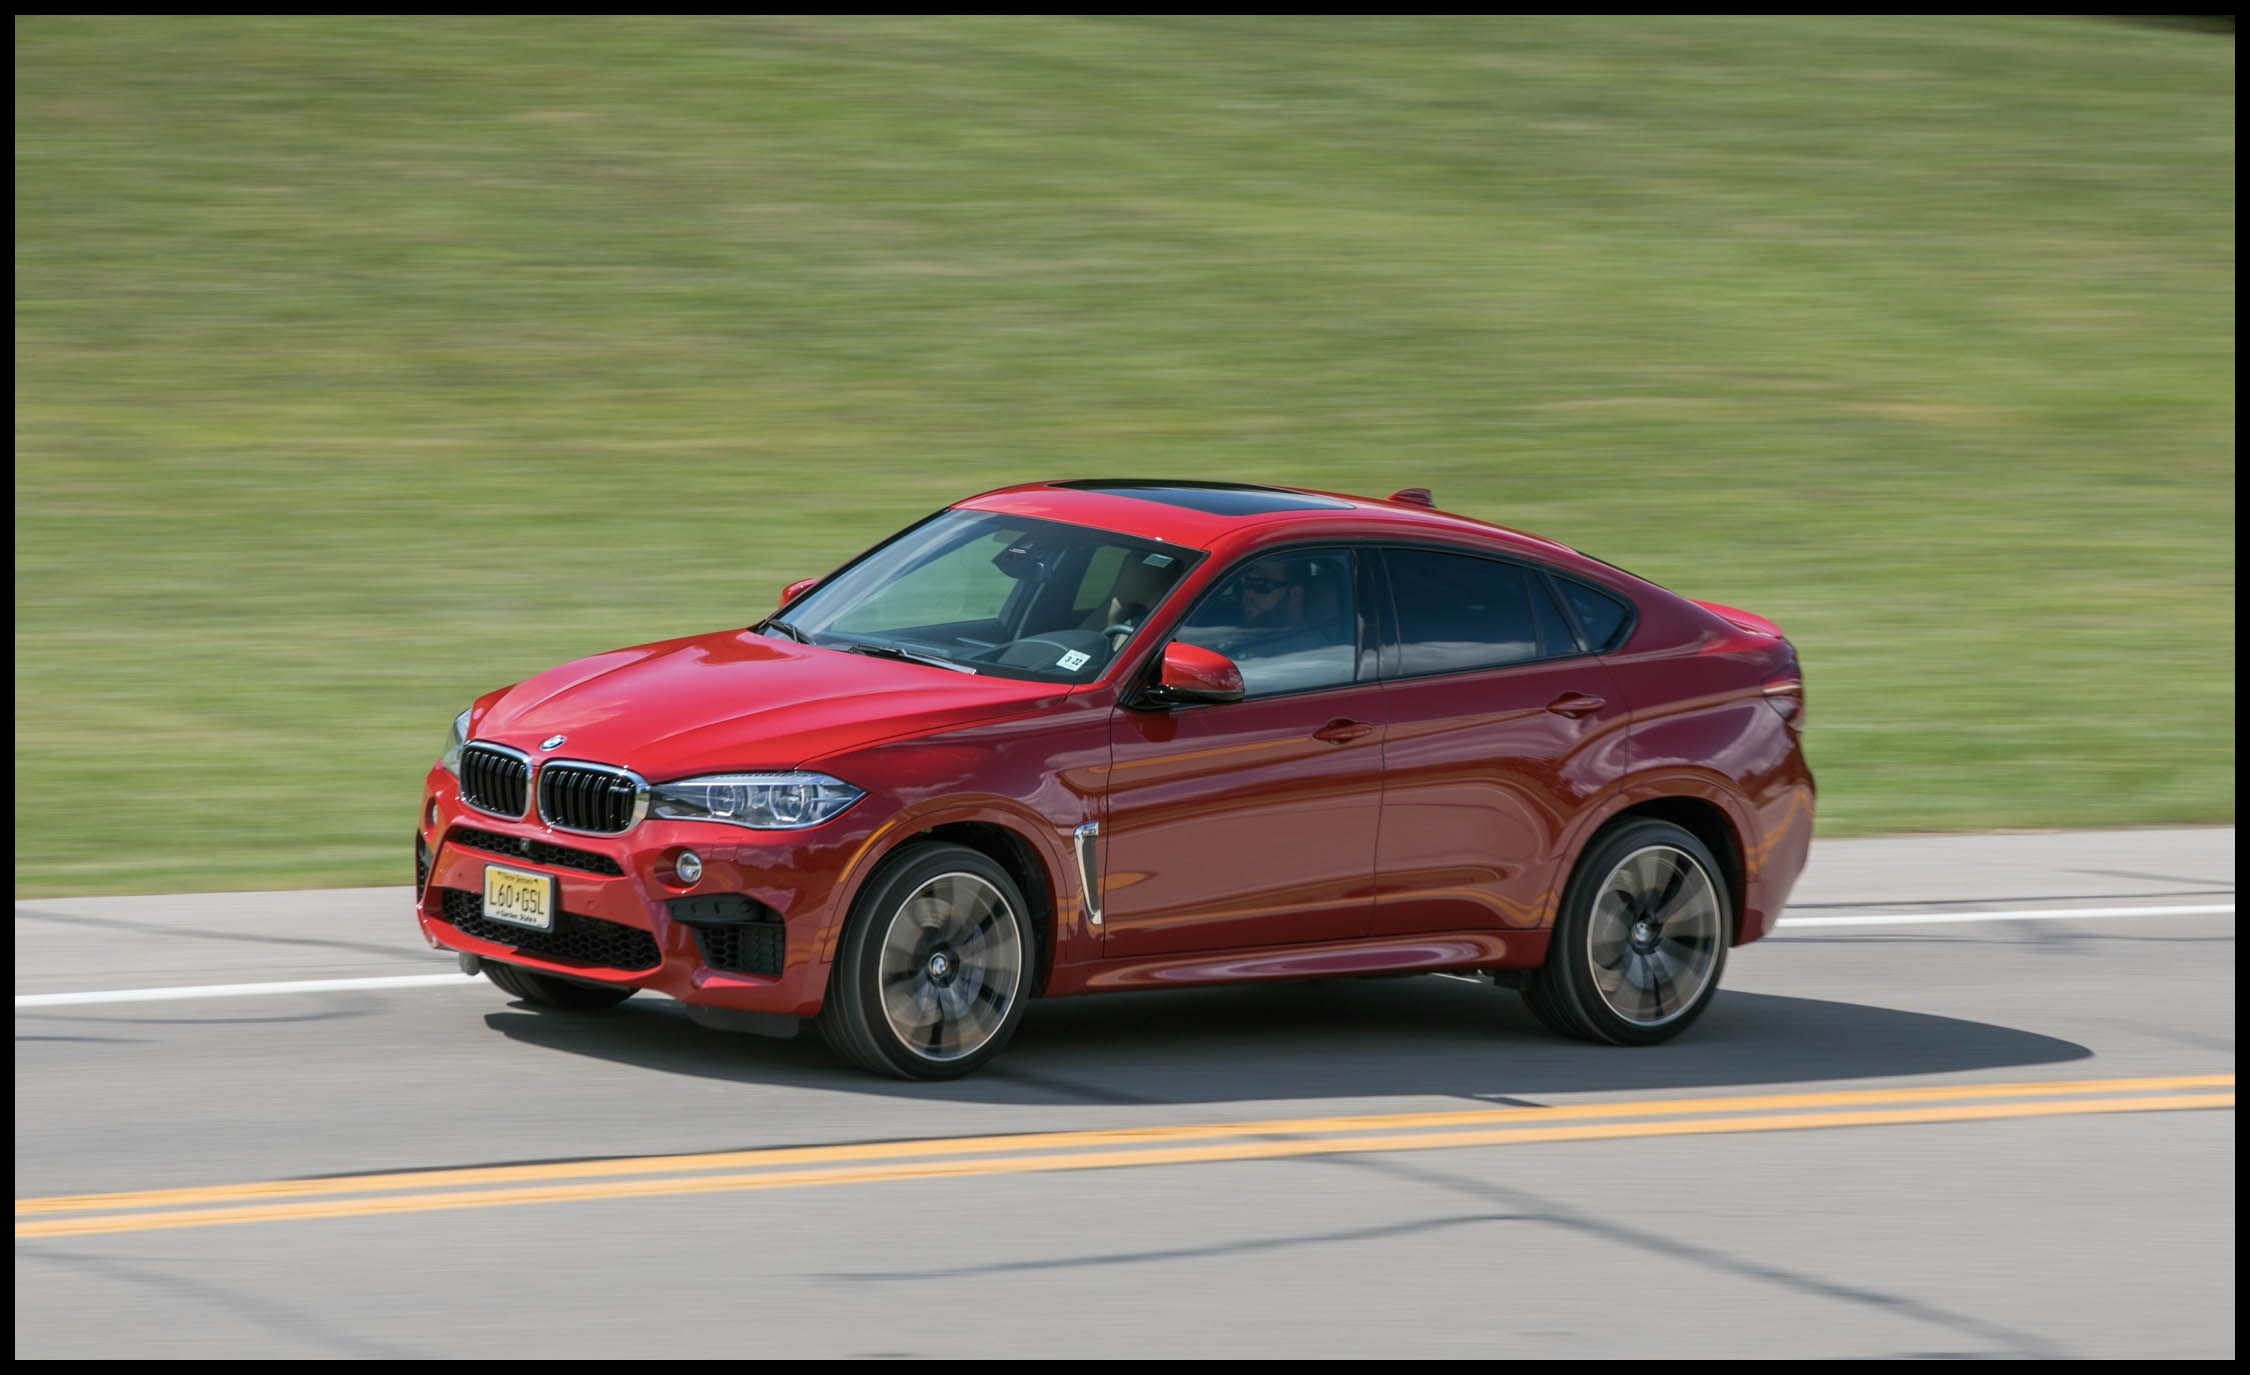 2018 bmw x6 m 09 placement